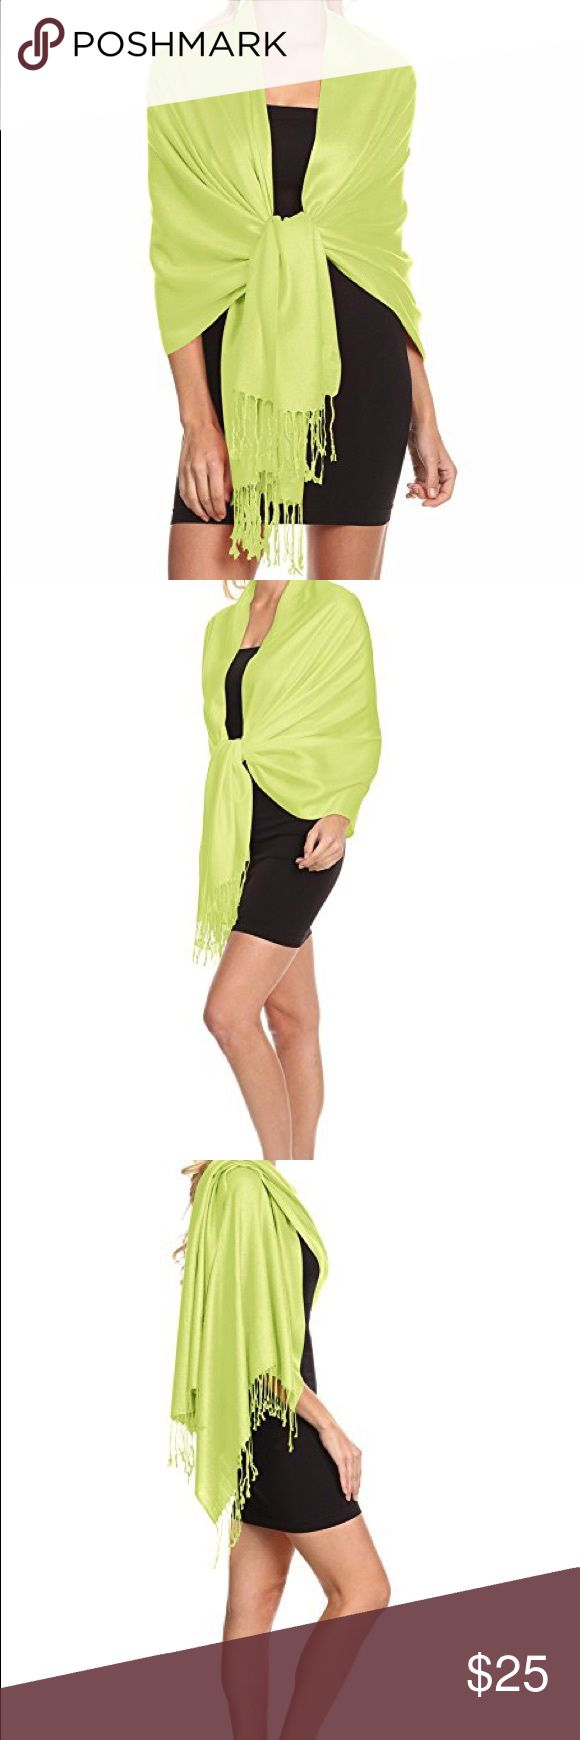 SUPER SOFT TRAVEL PASHMINA SCARF WRAP SHAWL STOLE Material: 100% pashmina Size: 72 inches x 27 inches (excluding 3 inches tassels) Brand new, seal in plastic wrapper Weight: 6.5 oz Imported Perfect for Traveling! Color: Lime Green Accessories Scarves & Wraps